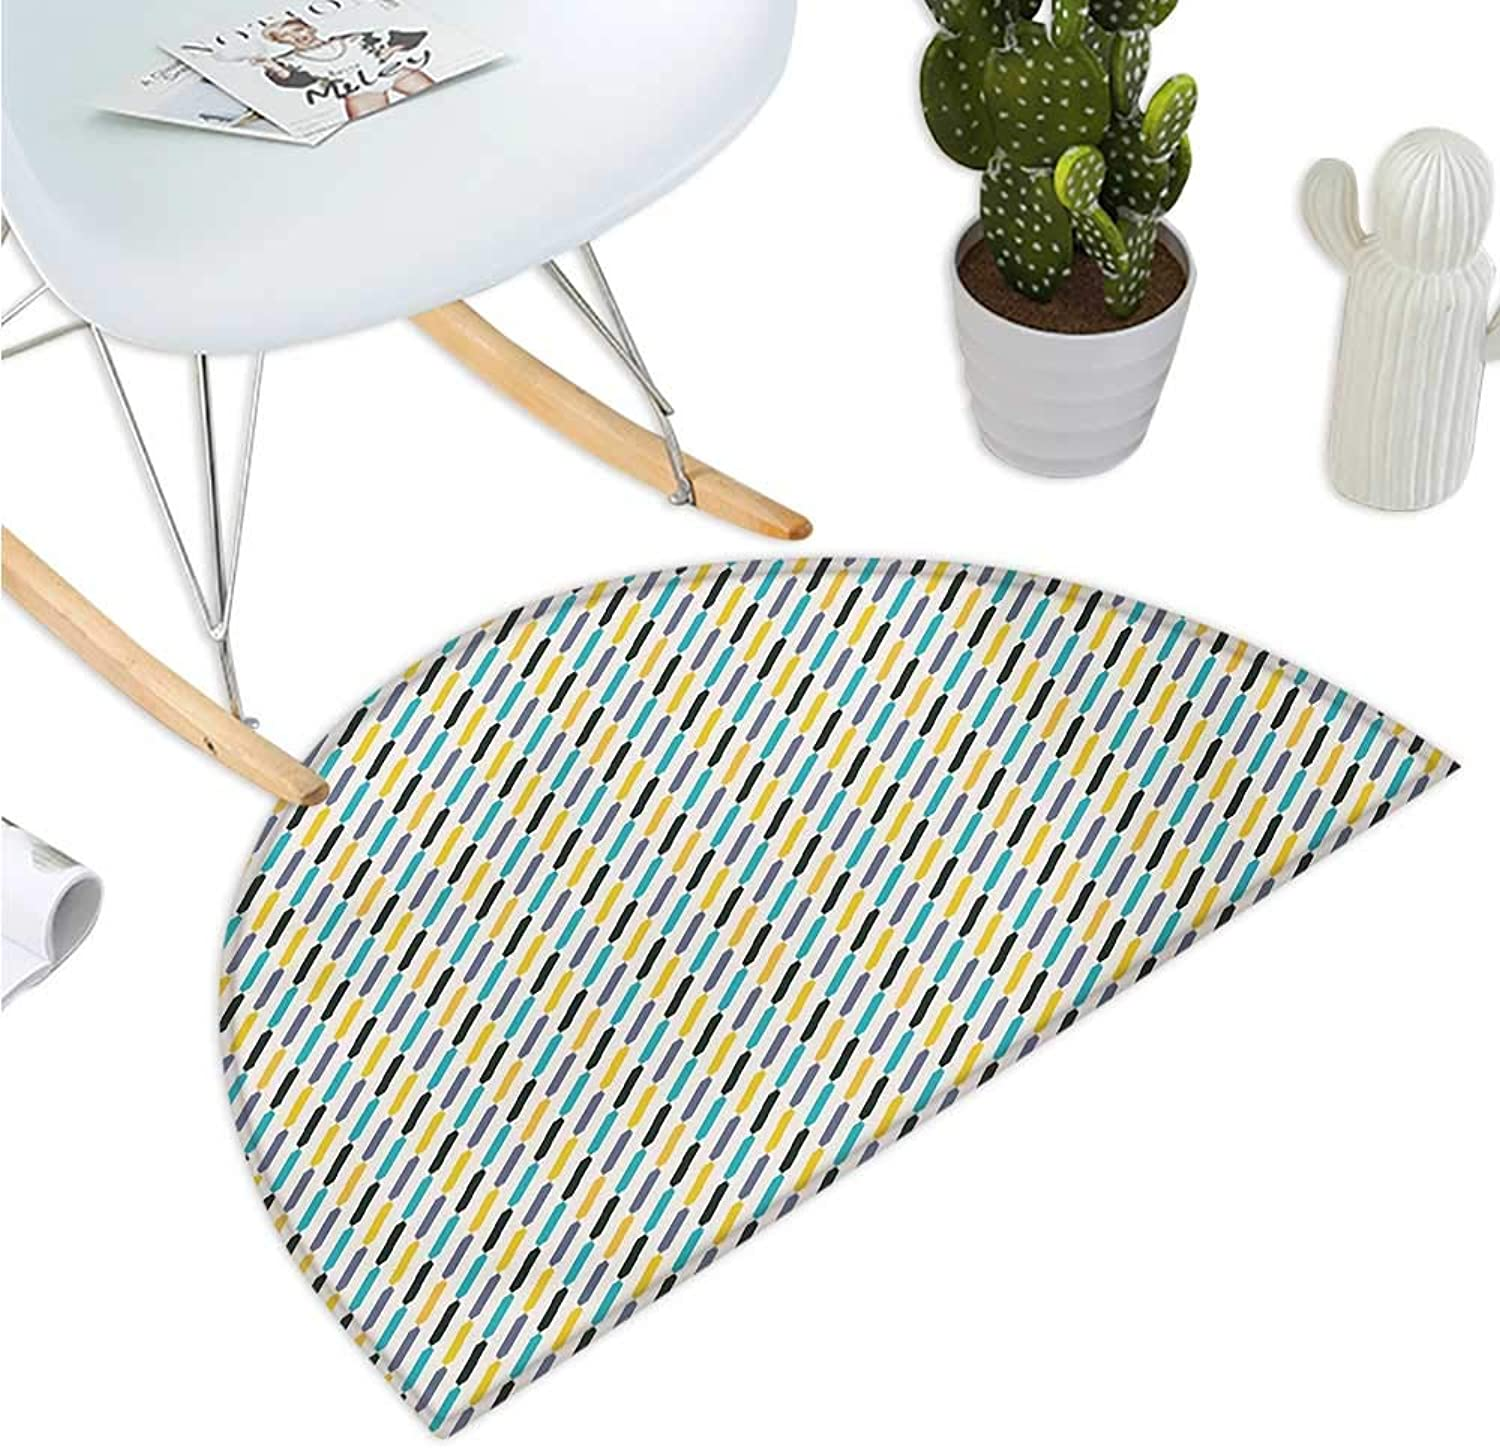 Modern Semicircular Cushion Diagonal Stylized Different colord Lines Striped Vintage Vibrant Halfmoon doormats H 51.1  xD 76.7  Yellow Black Sky bluee Purple